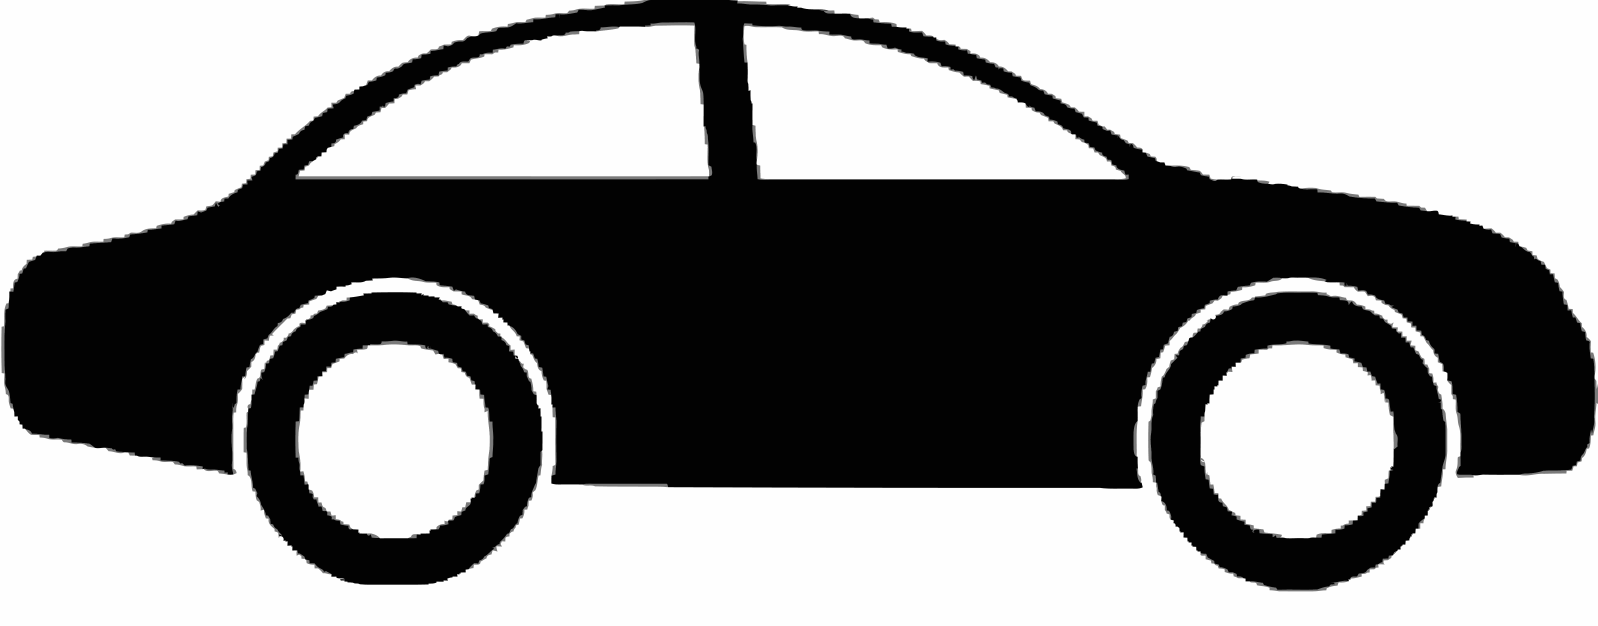 Sports Car Clipart Side View Clipart Pan-Sports Car Clipart Side View Clipart Panda Free Clipart Images-19